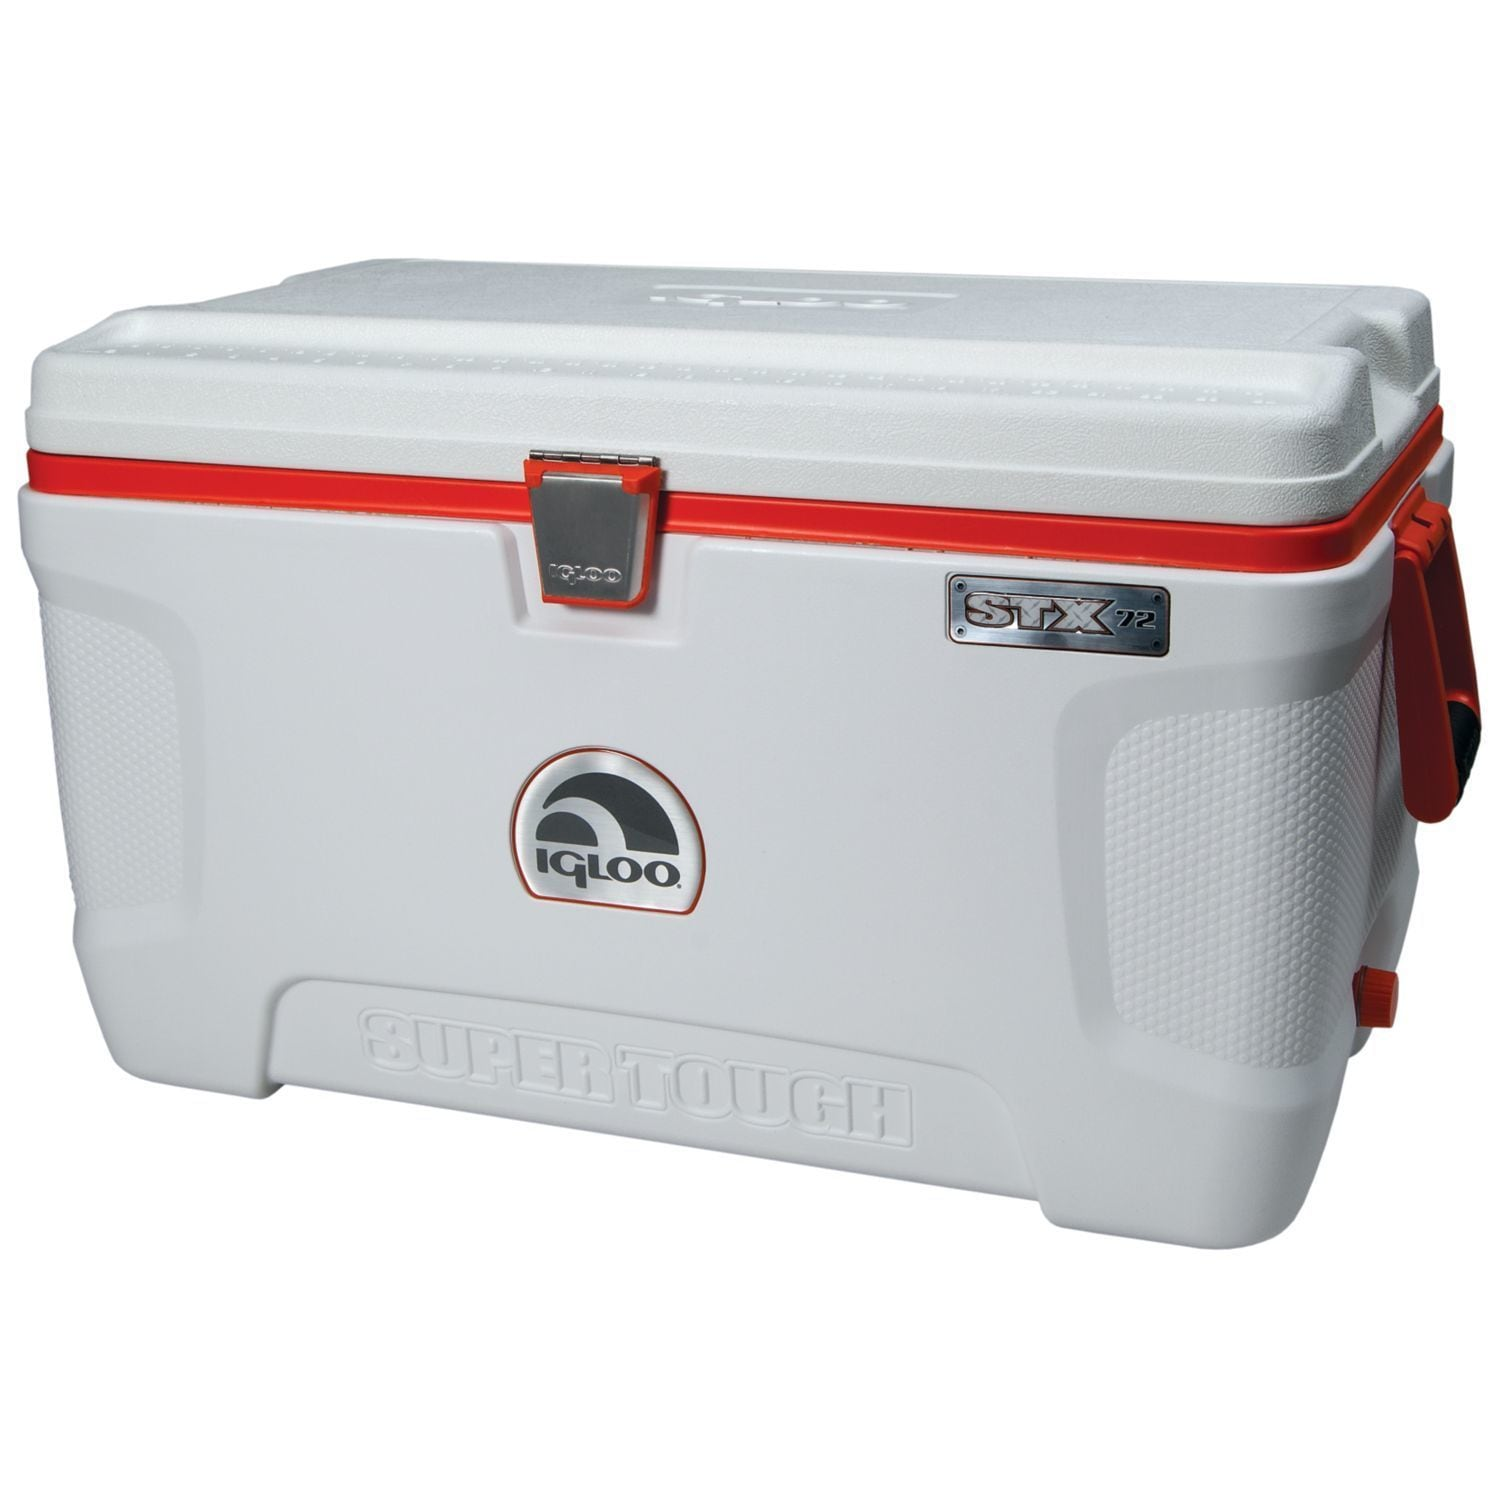 Igloo Super Tough STX-72 Camping Cooler (White/Orange) (S...